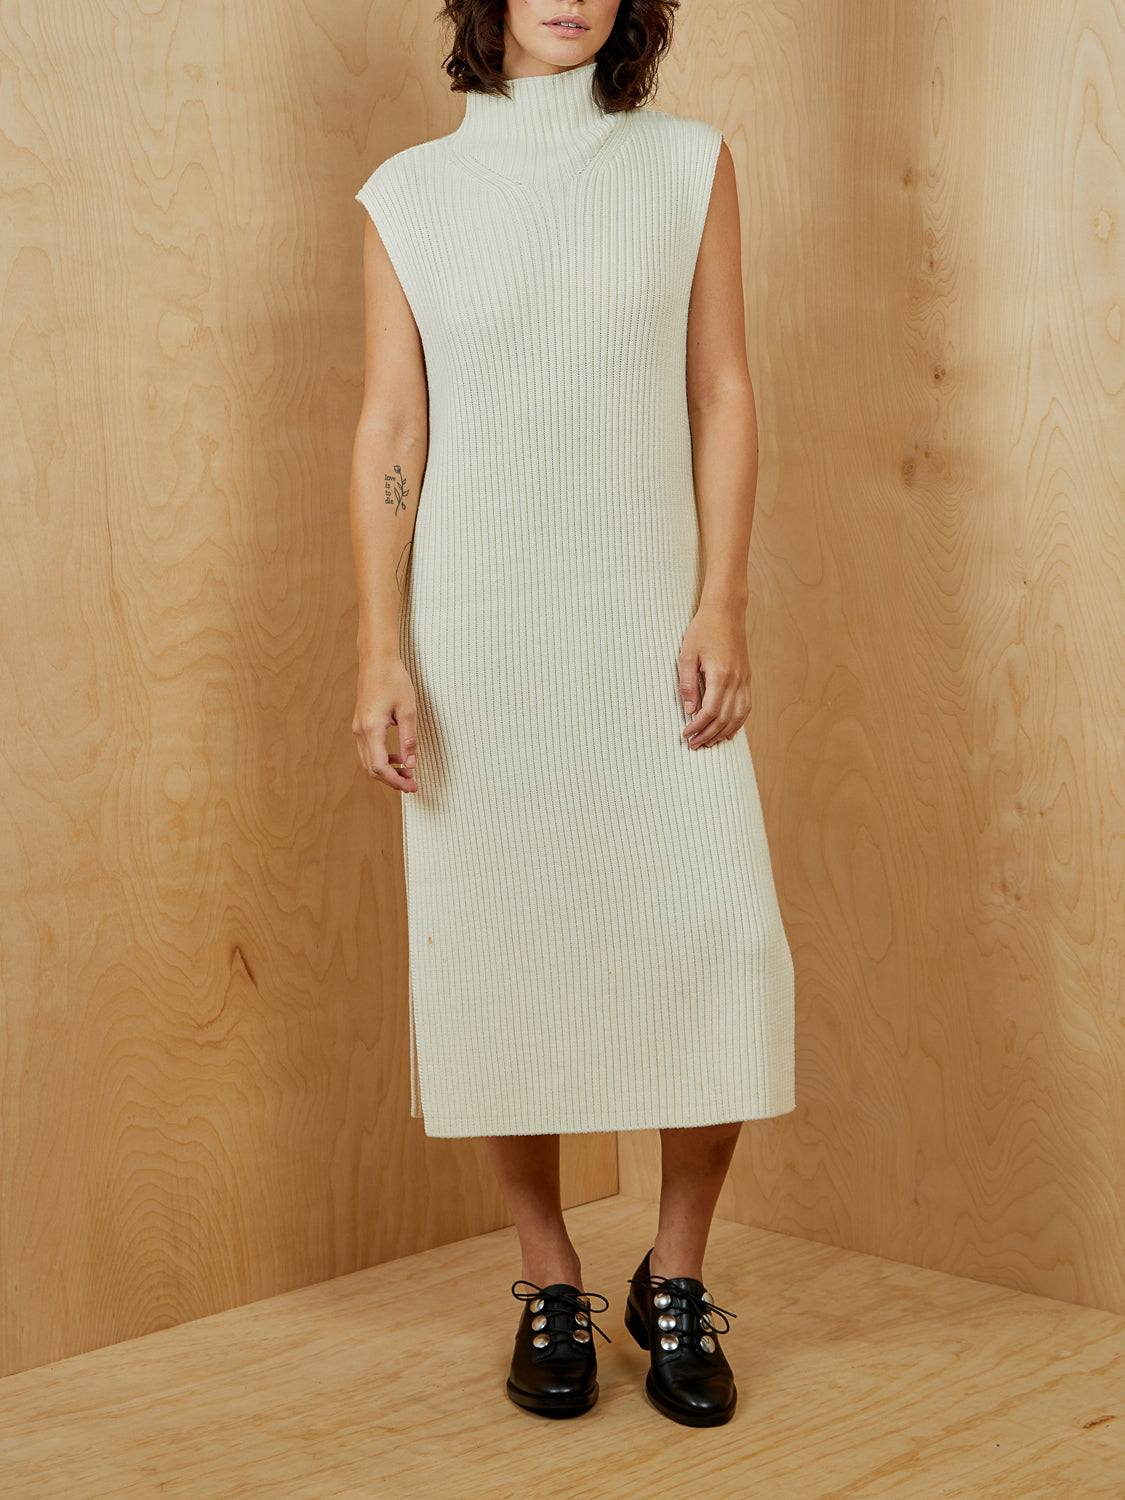 JAC by Jacqueline Cono'r Off White Sleeveless Sweater Dress